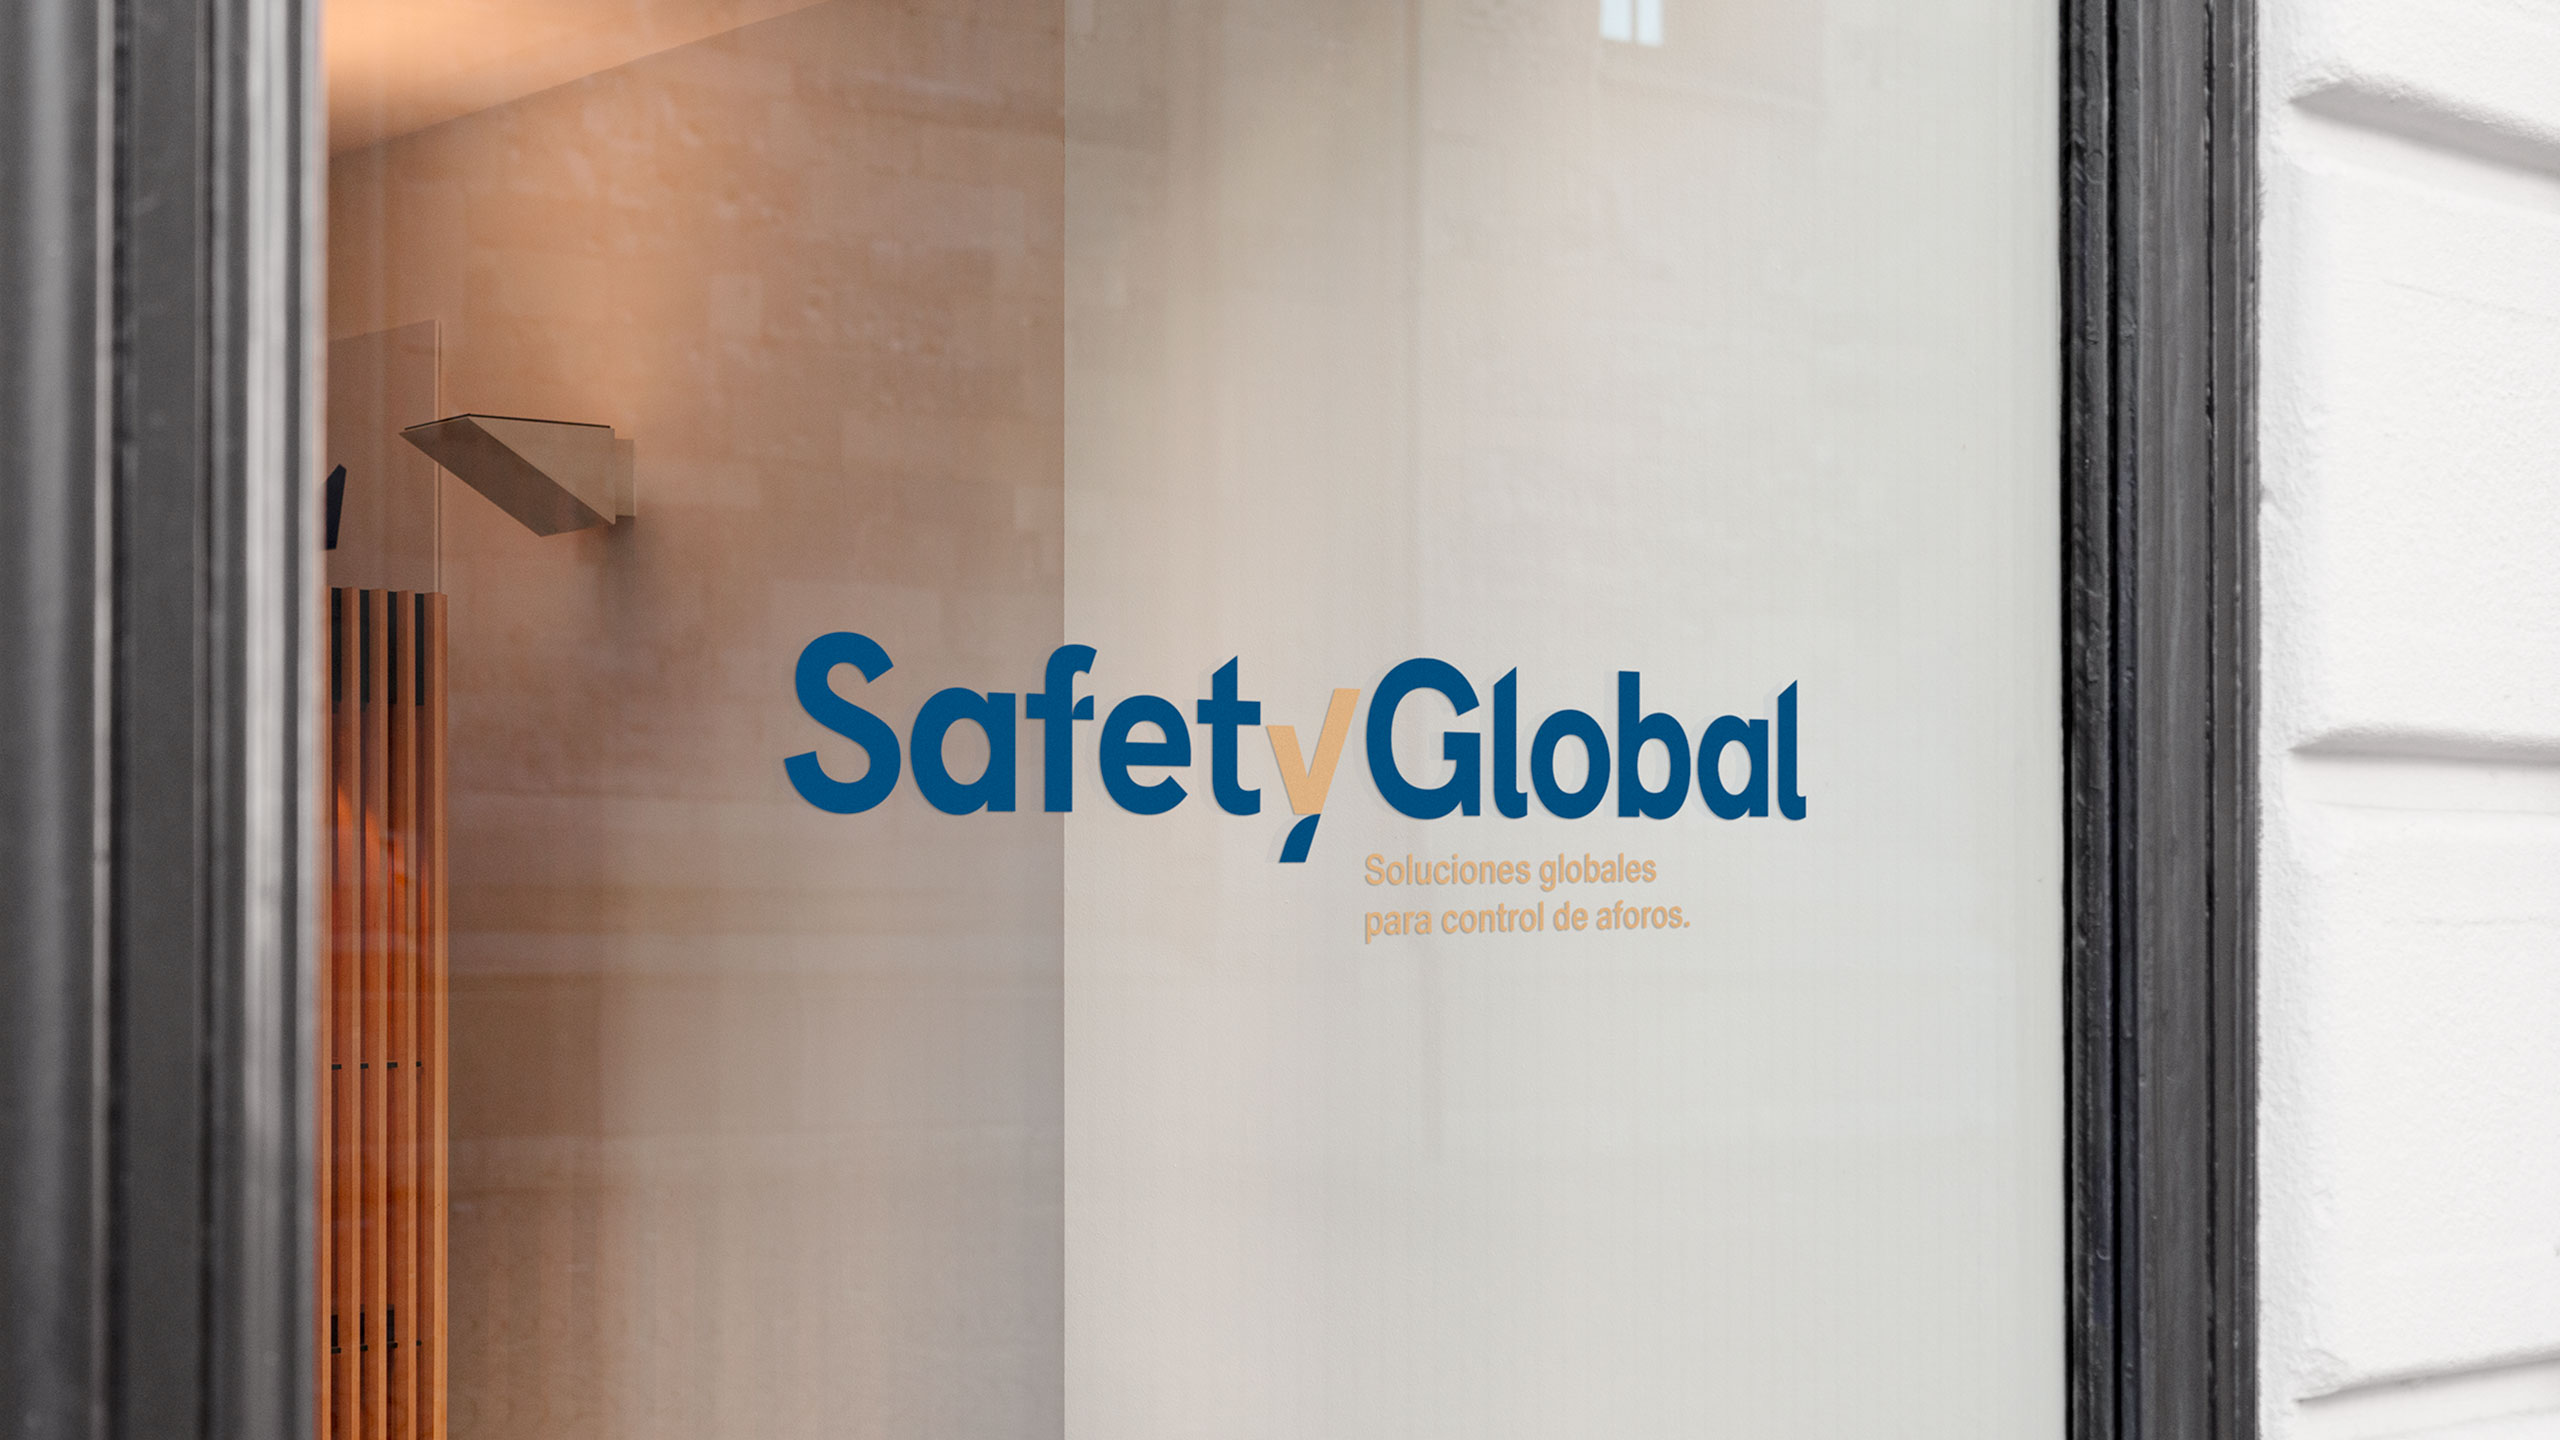 SAFETY GLOBAL